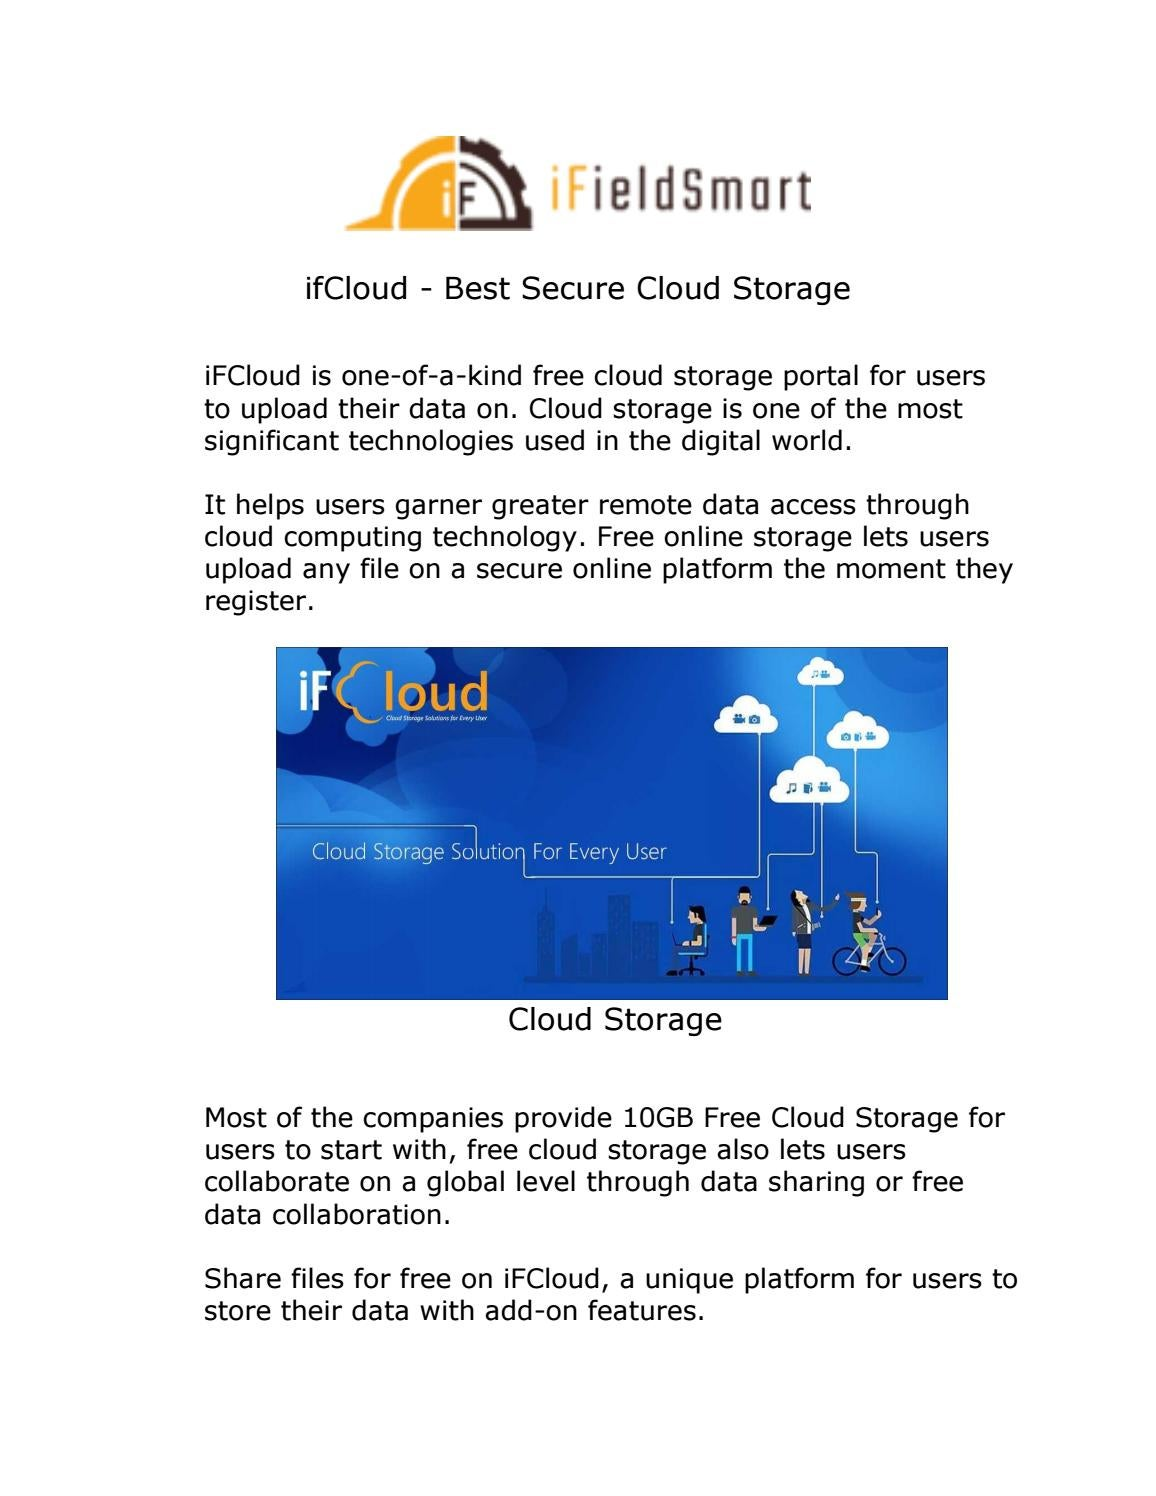 ifCloud - Best Secure Cloud Storage by ifieldsmart1 - issuu